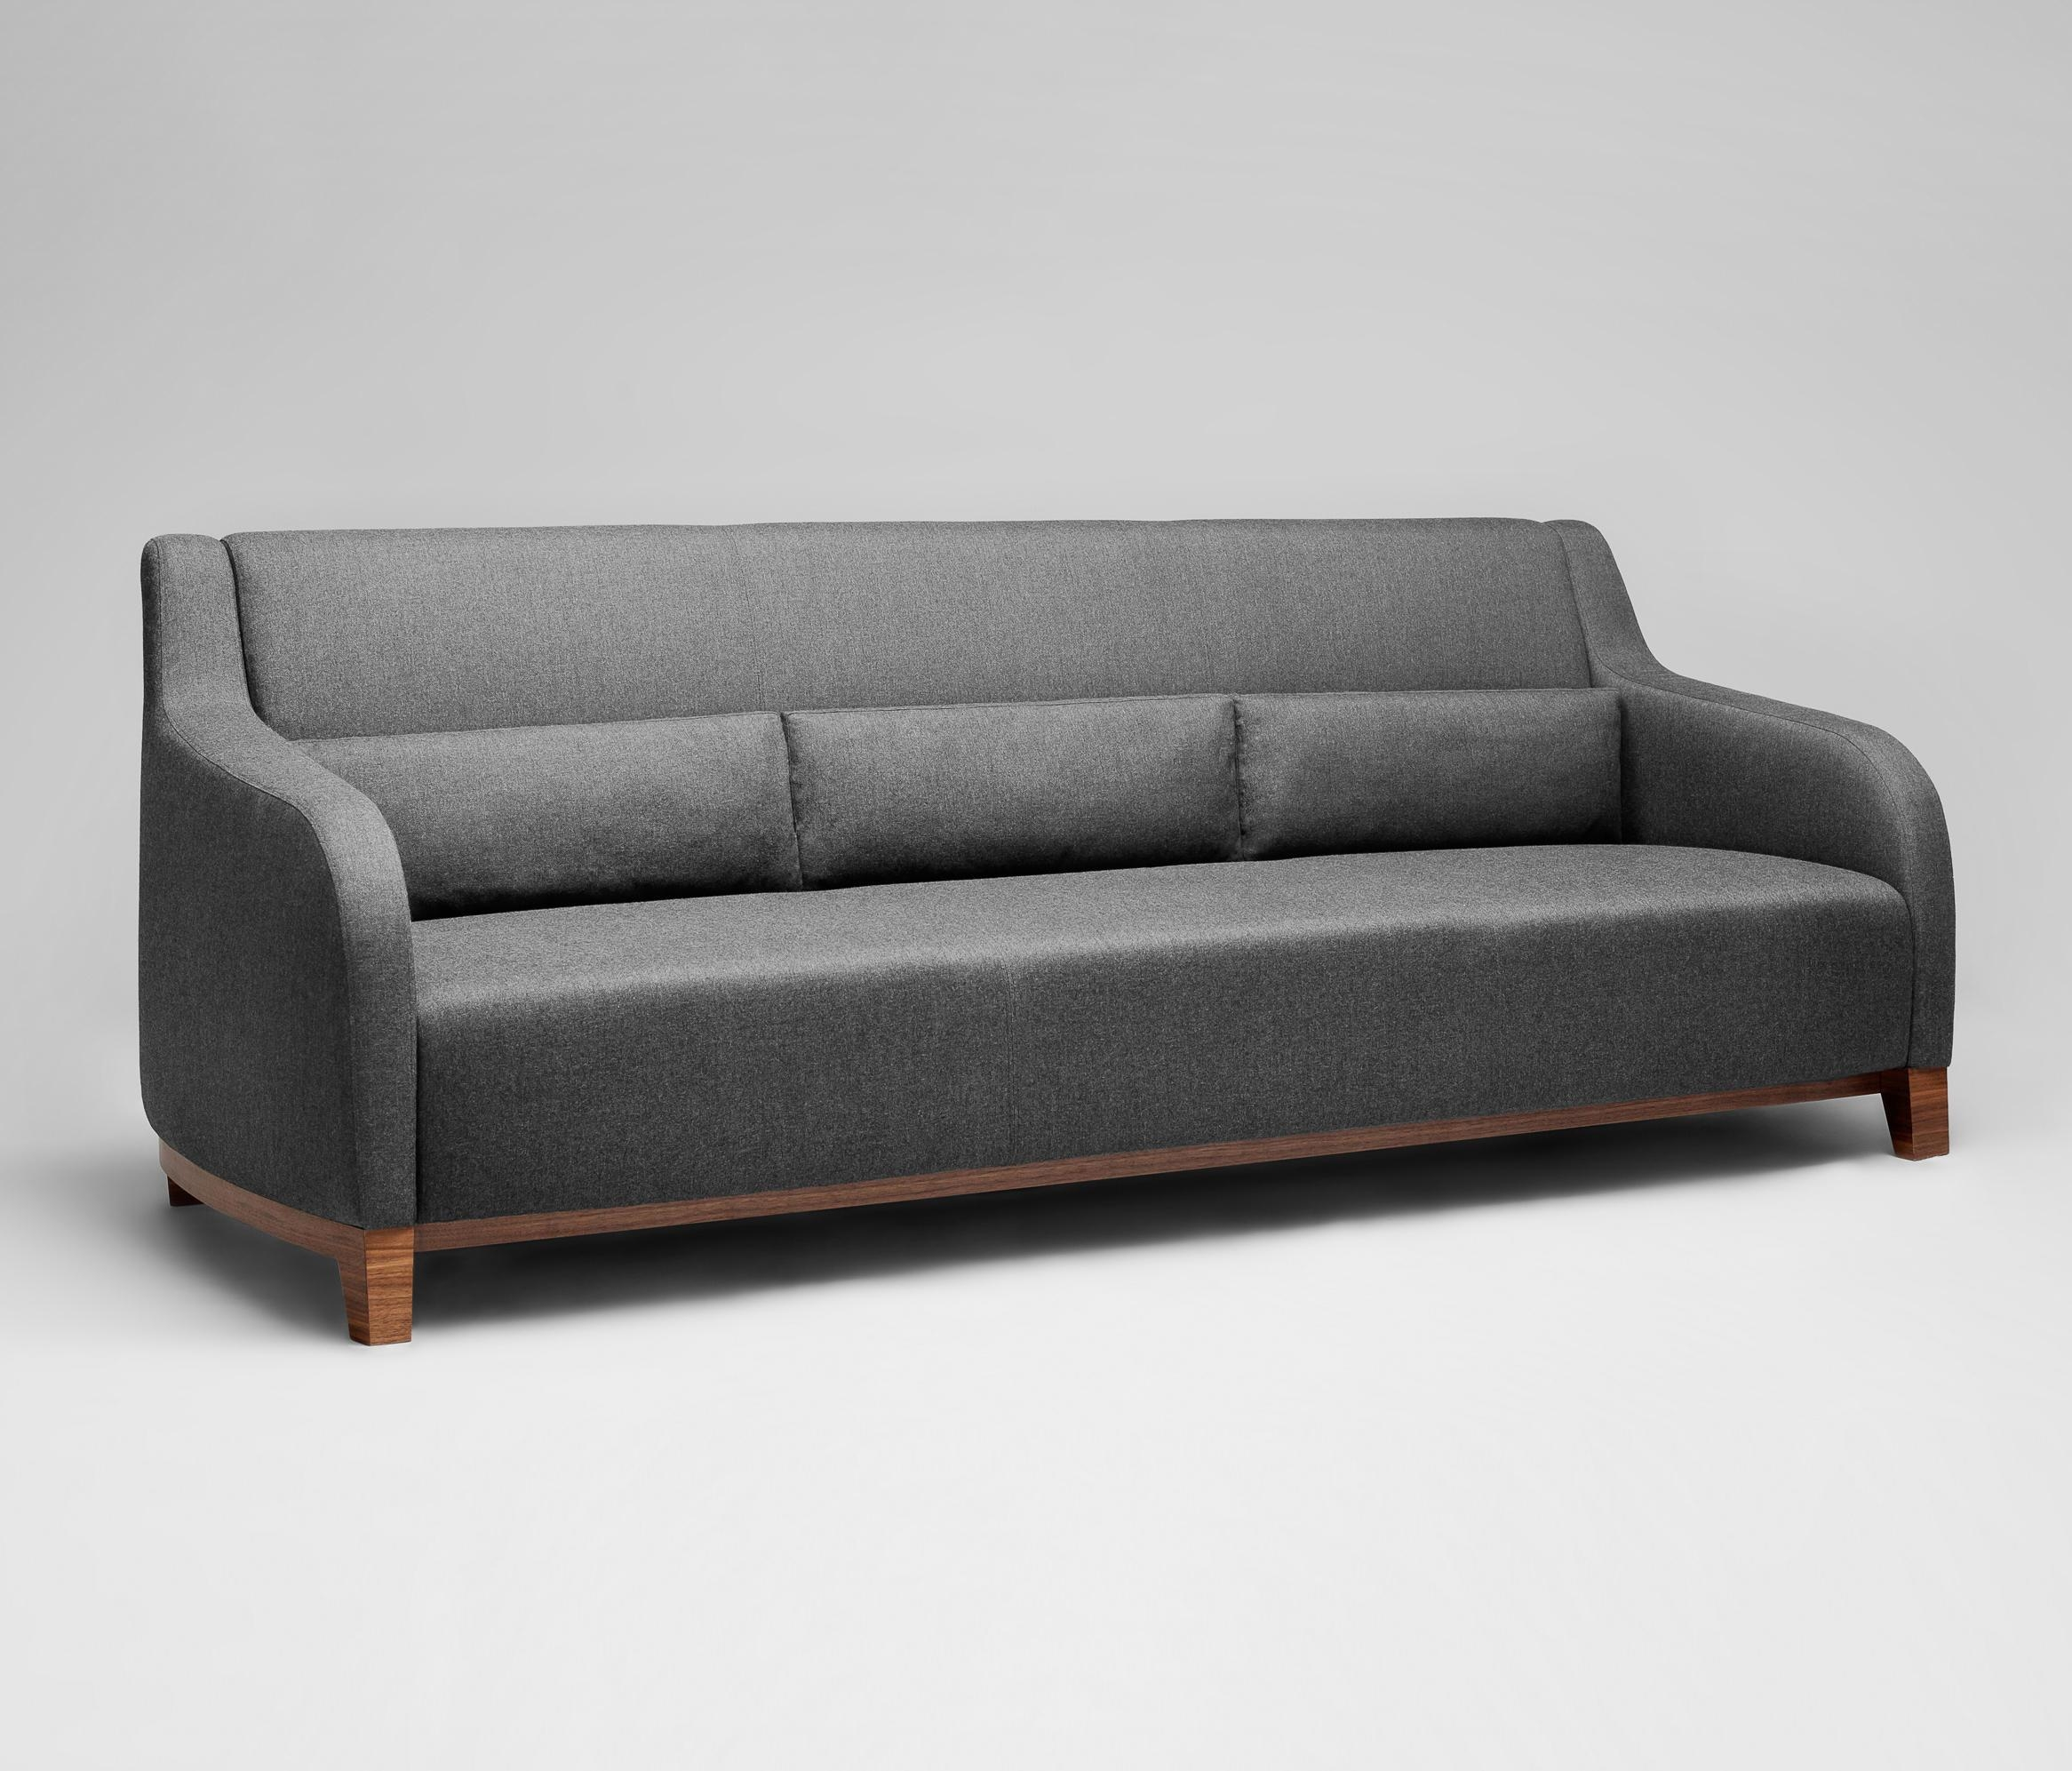 Collins Sofa – Lounge Sofas From Comforty | Architonic With Regard To Collins Sofas (View 14 of 20)